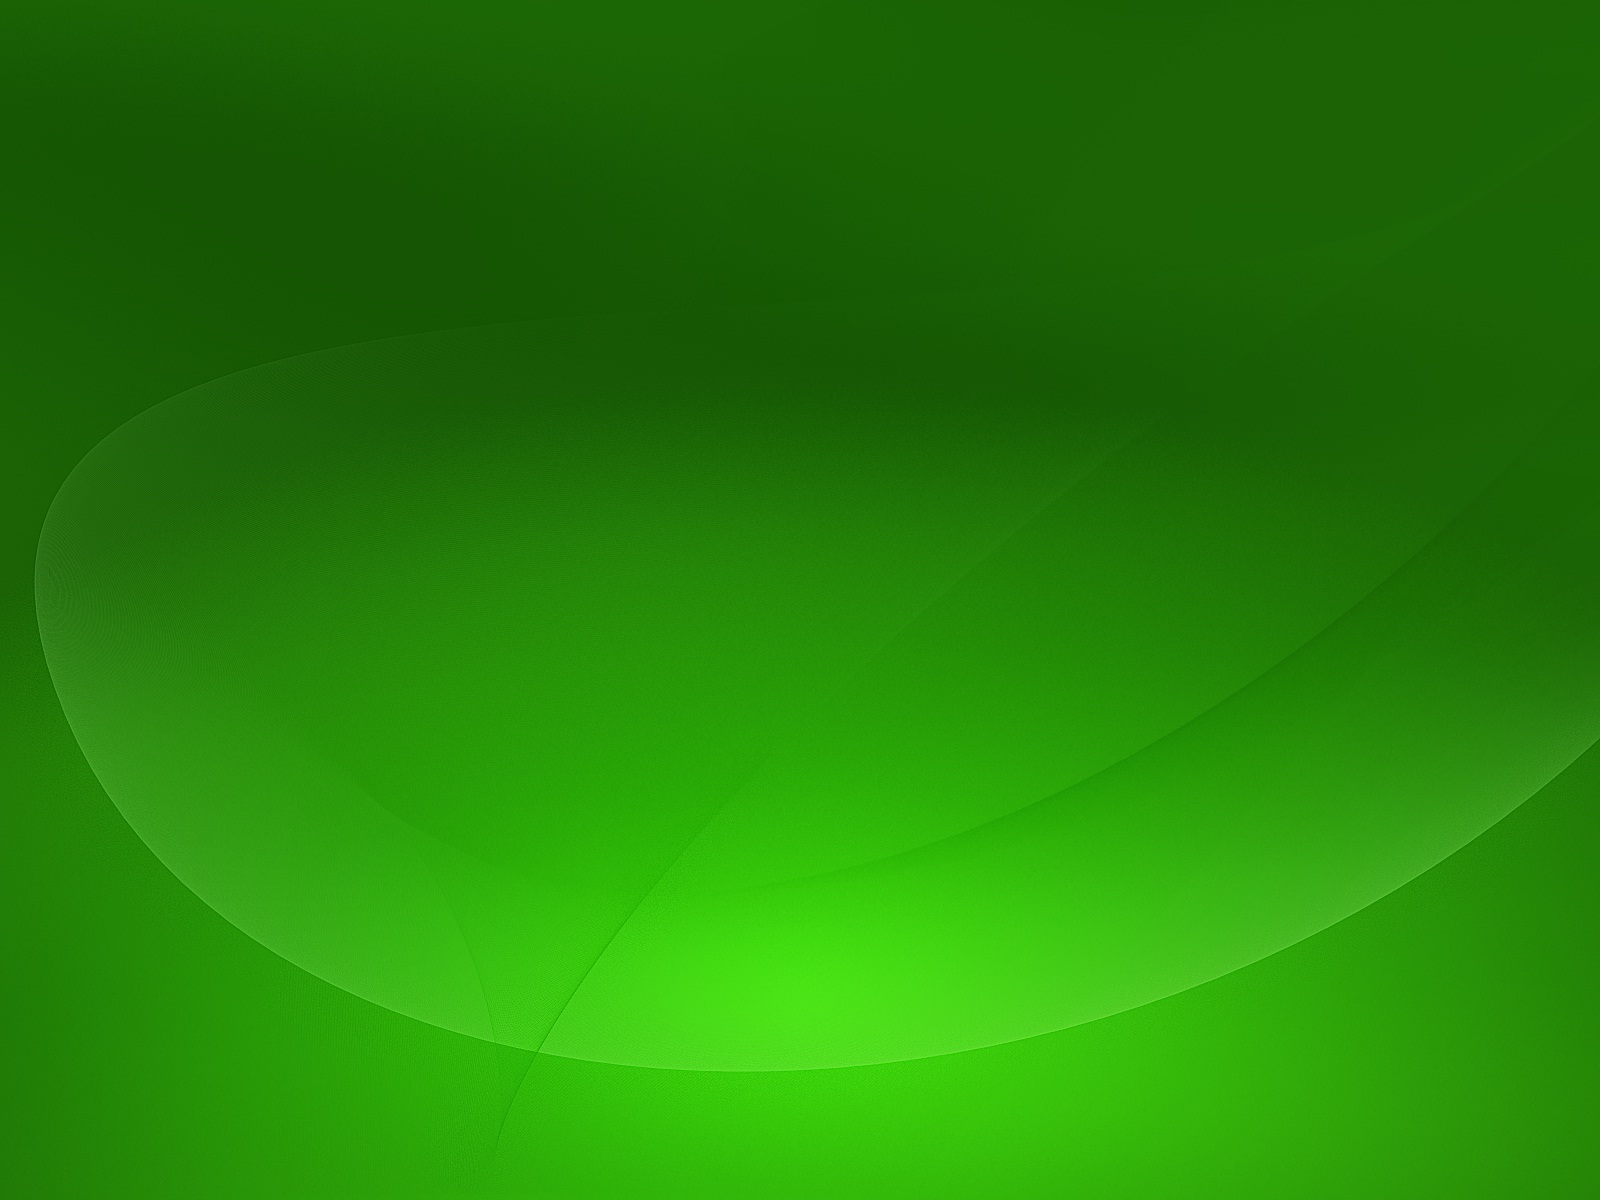 Abstract Desktop Backgrounds HD Wallpapers Art Images green 1600x1200